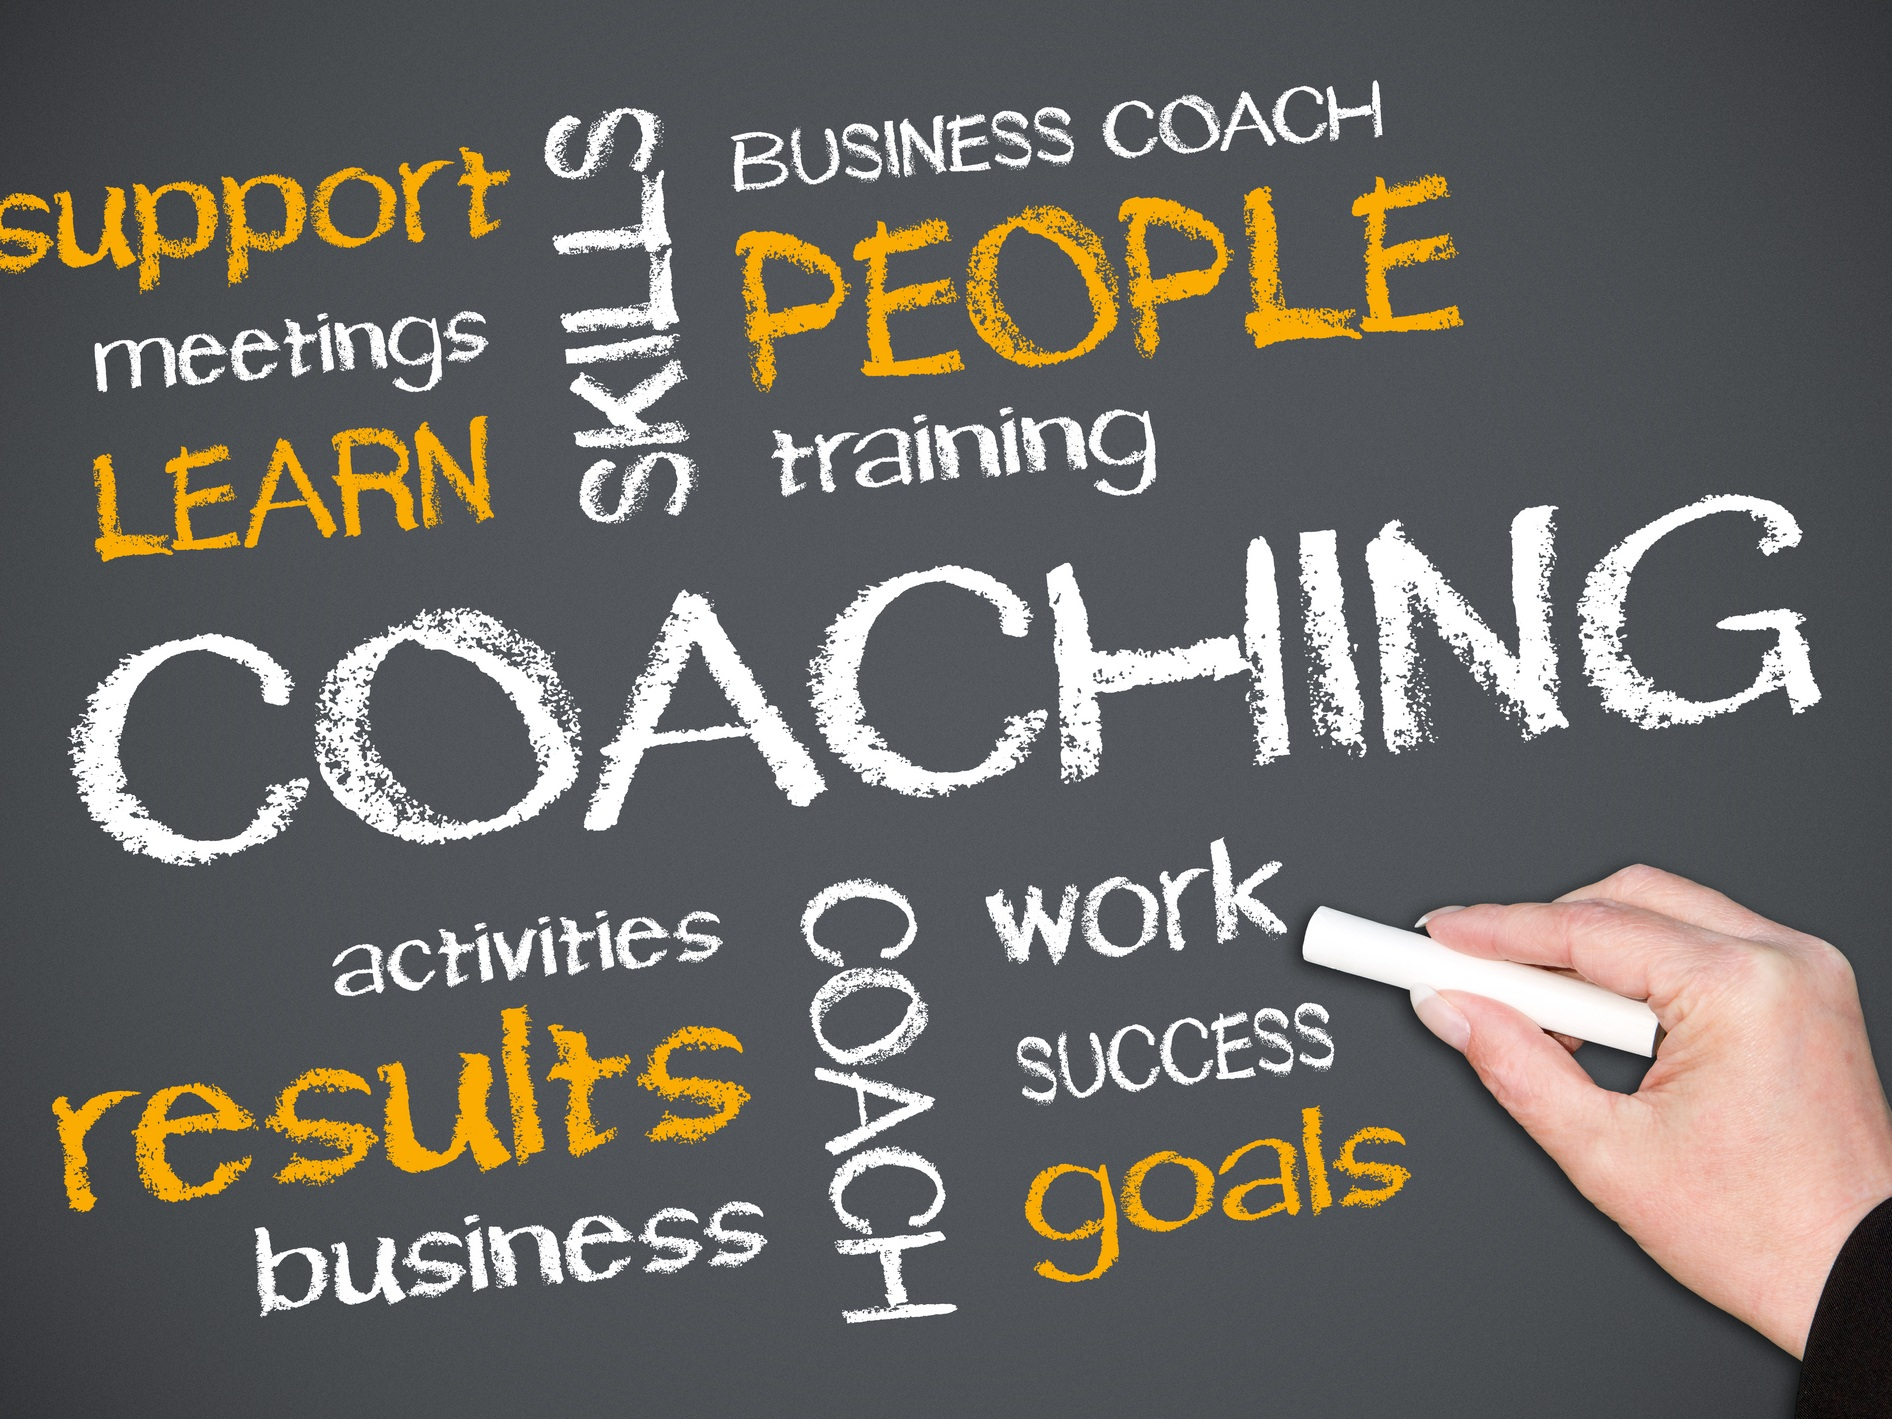 Small Business Coaching & Consulting - Increase accountability, clarity and focus....Small business coaching helps you grow your business through professional and personal development, which promotes continuous growth and strength.Small business consulting provides advice and brainstorming to create and implement strong business and marketing plans.